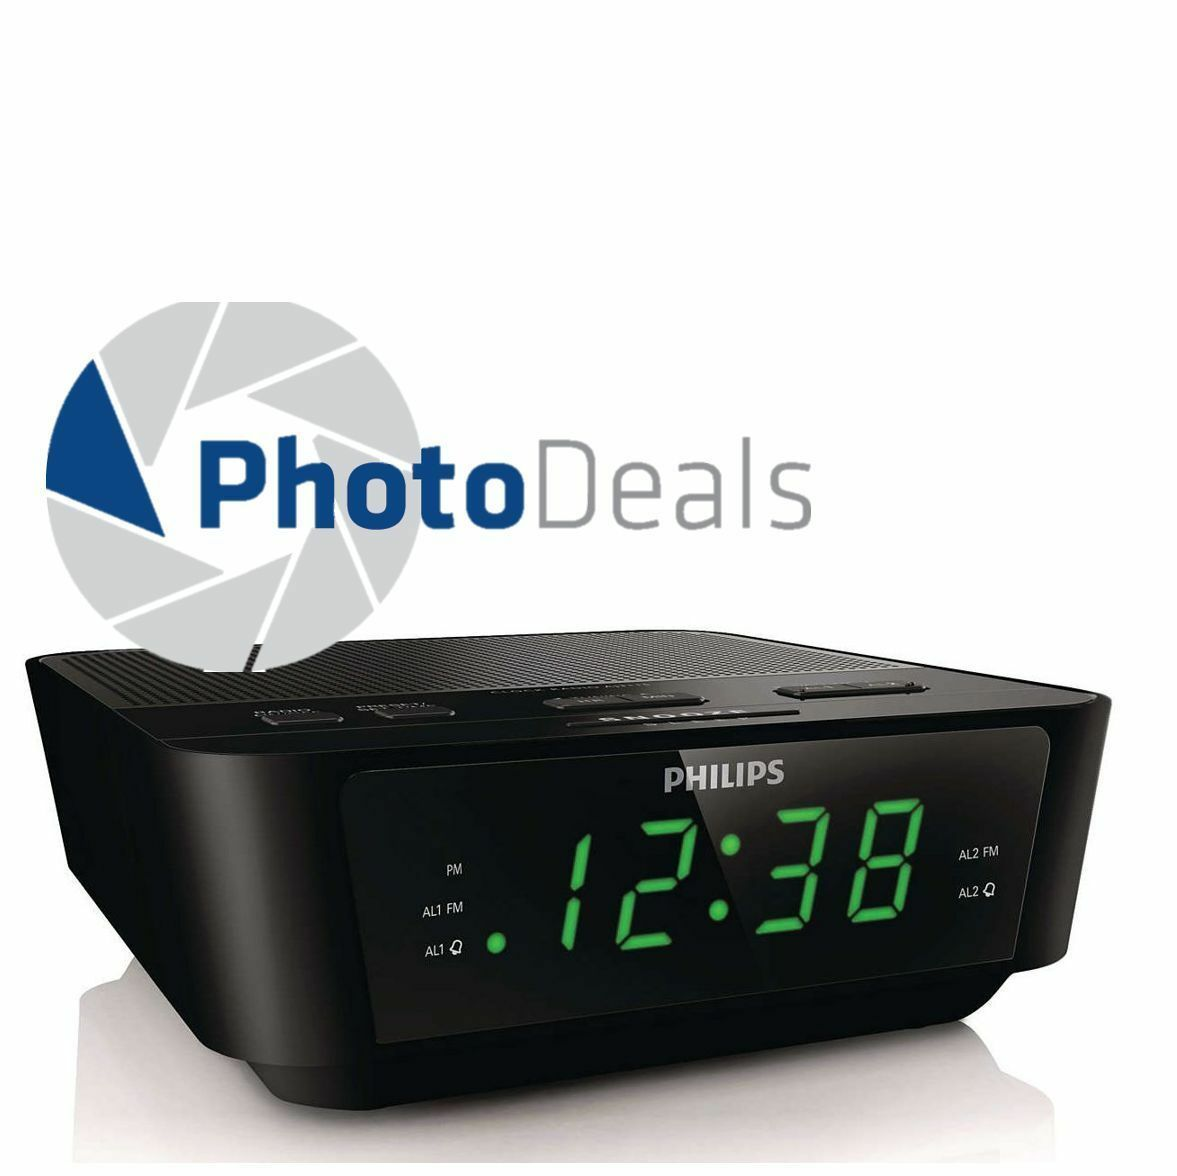 philips aj3116m digital tuning fm dual alarm clock radio black ebay. Black Bedroom Furniture Sets. Home Design Ideas